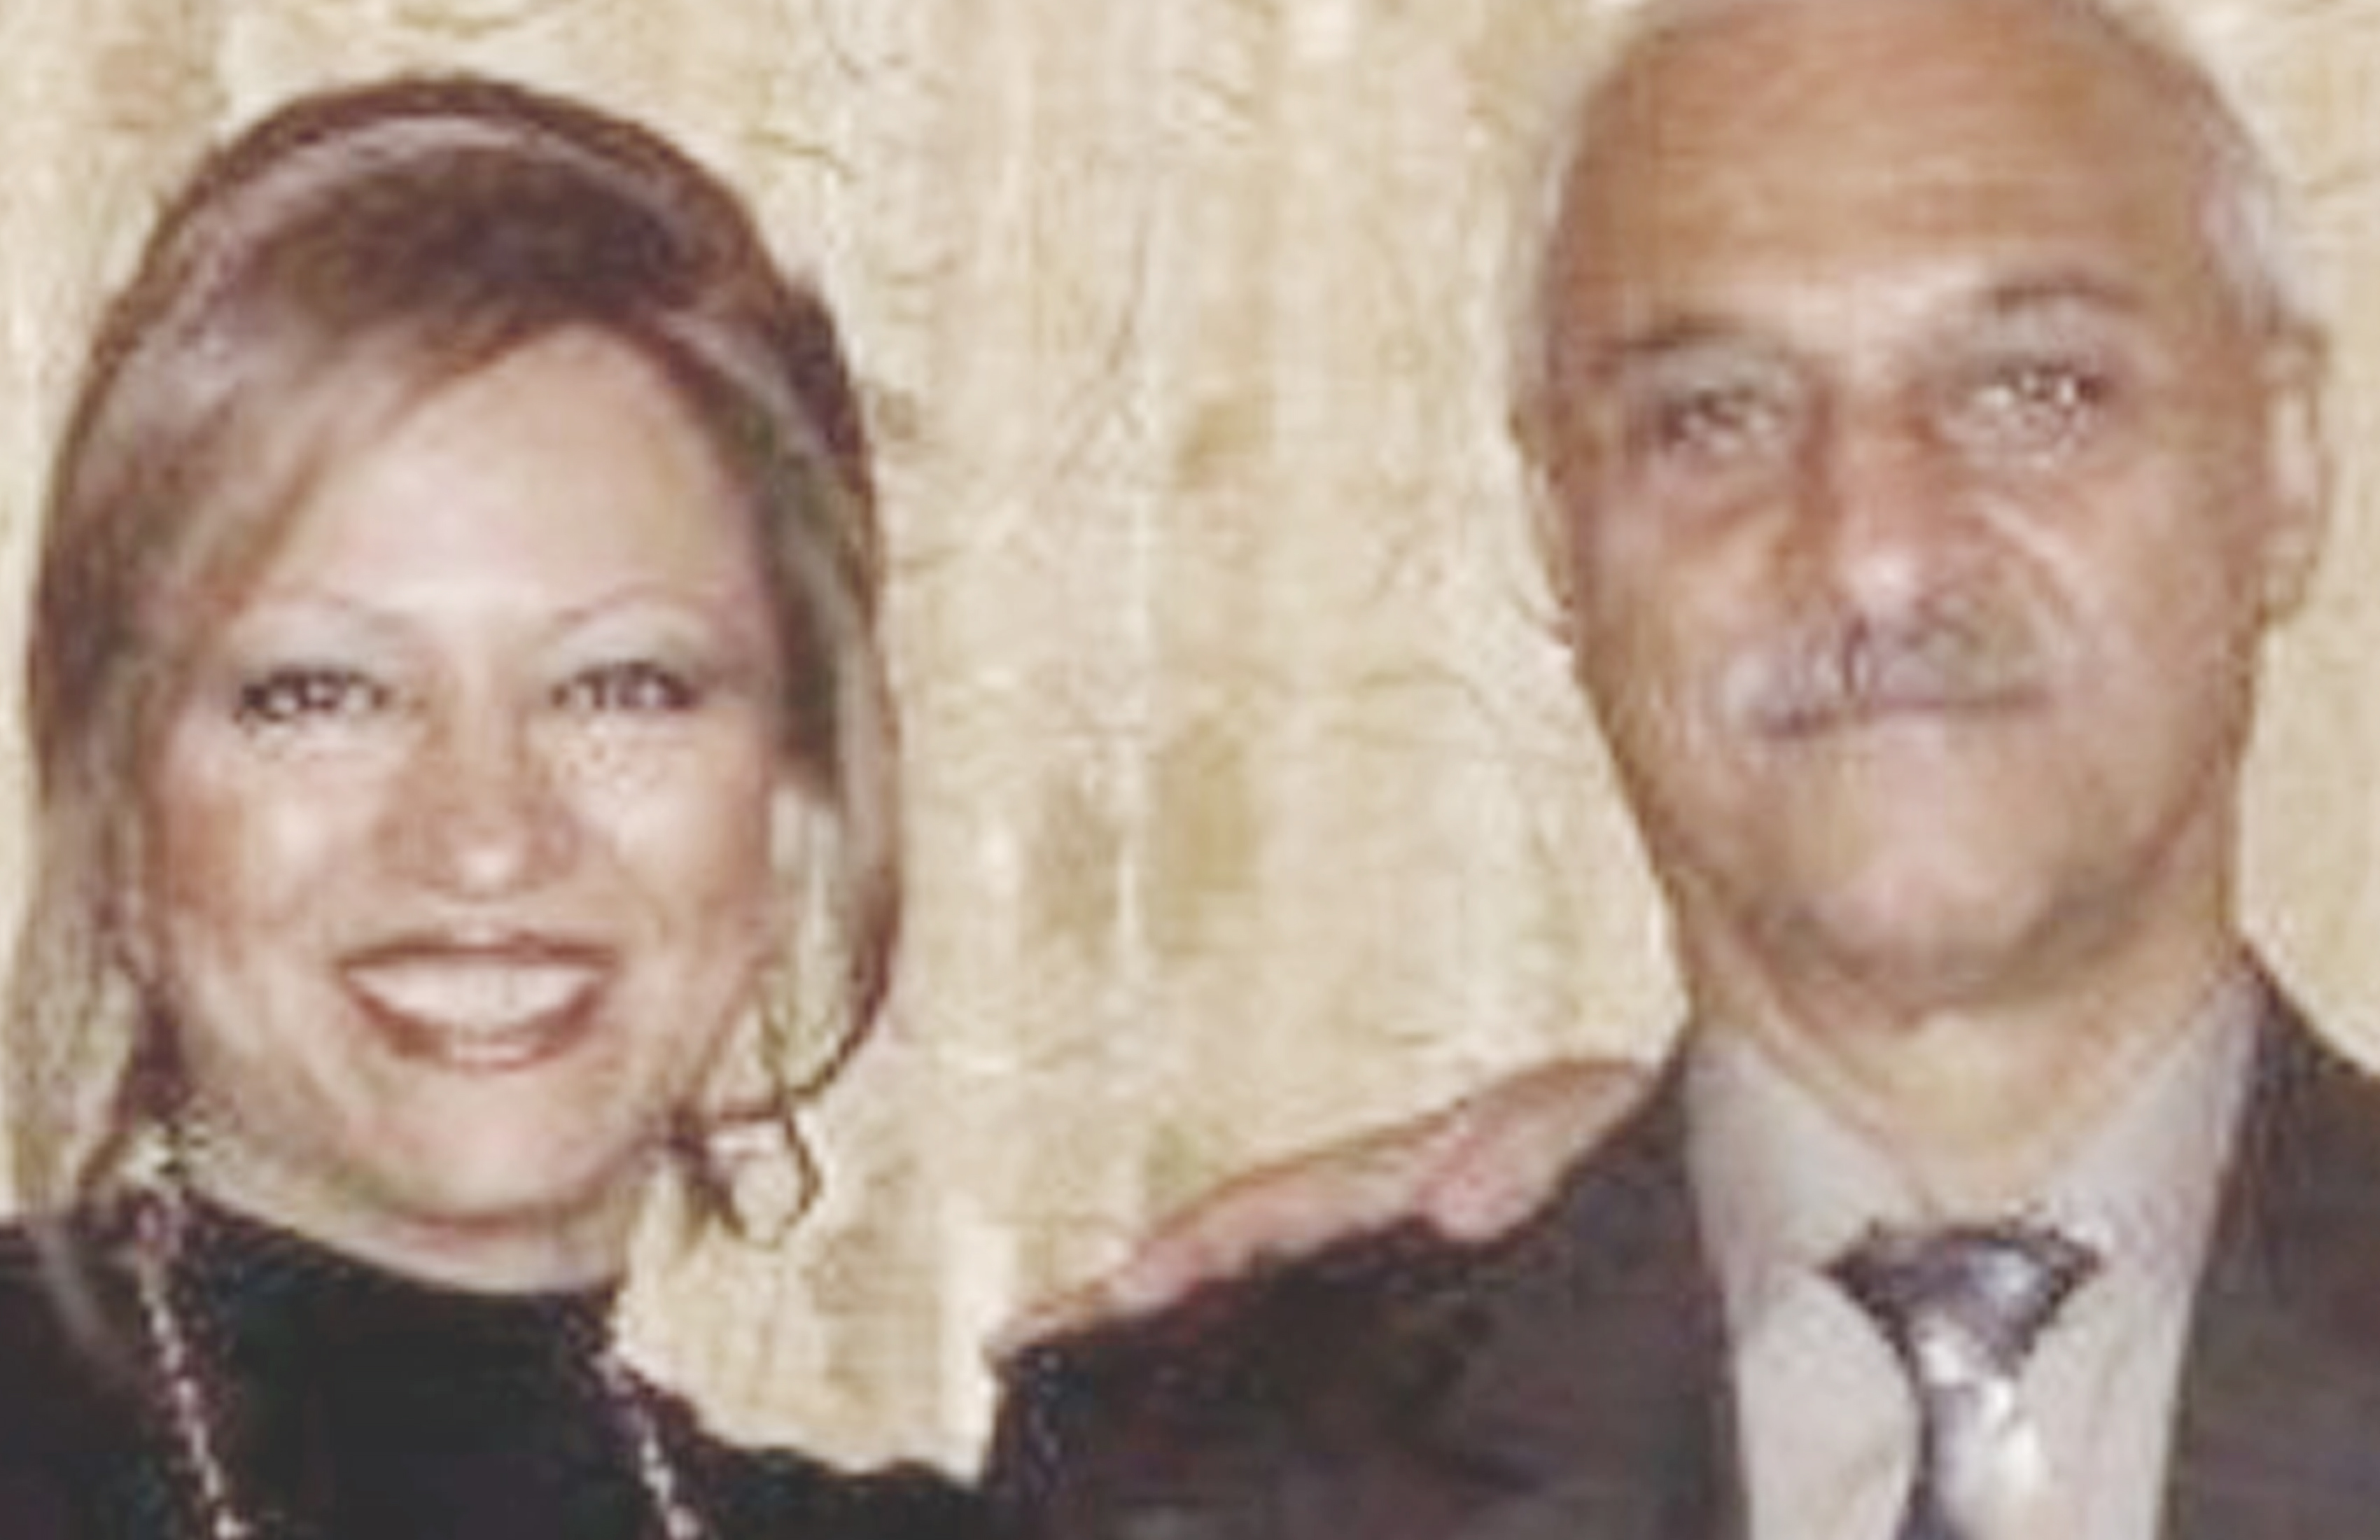 Elham Farahani (left), Adel Naeimi (right)